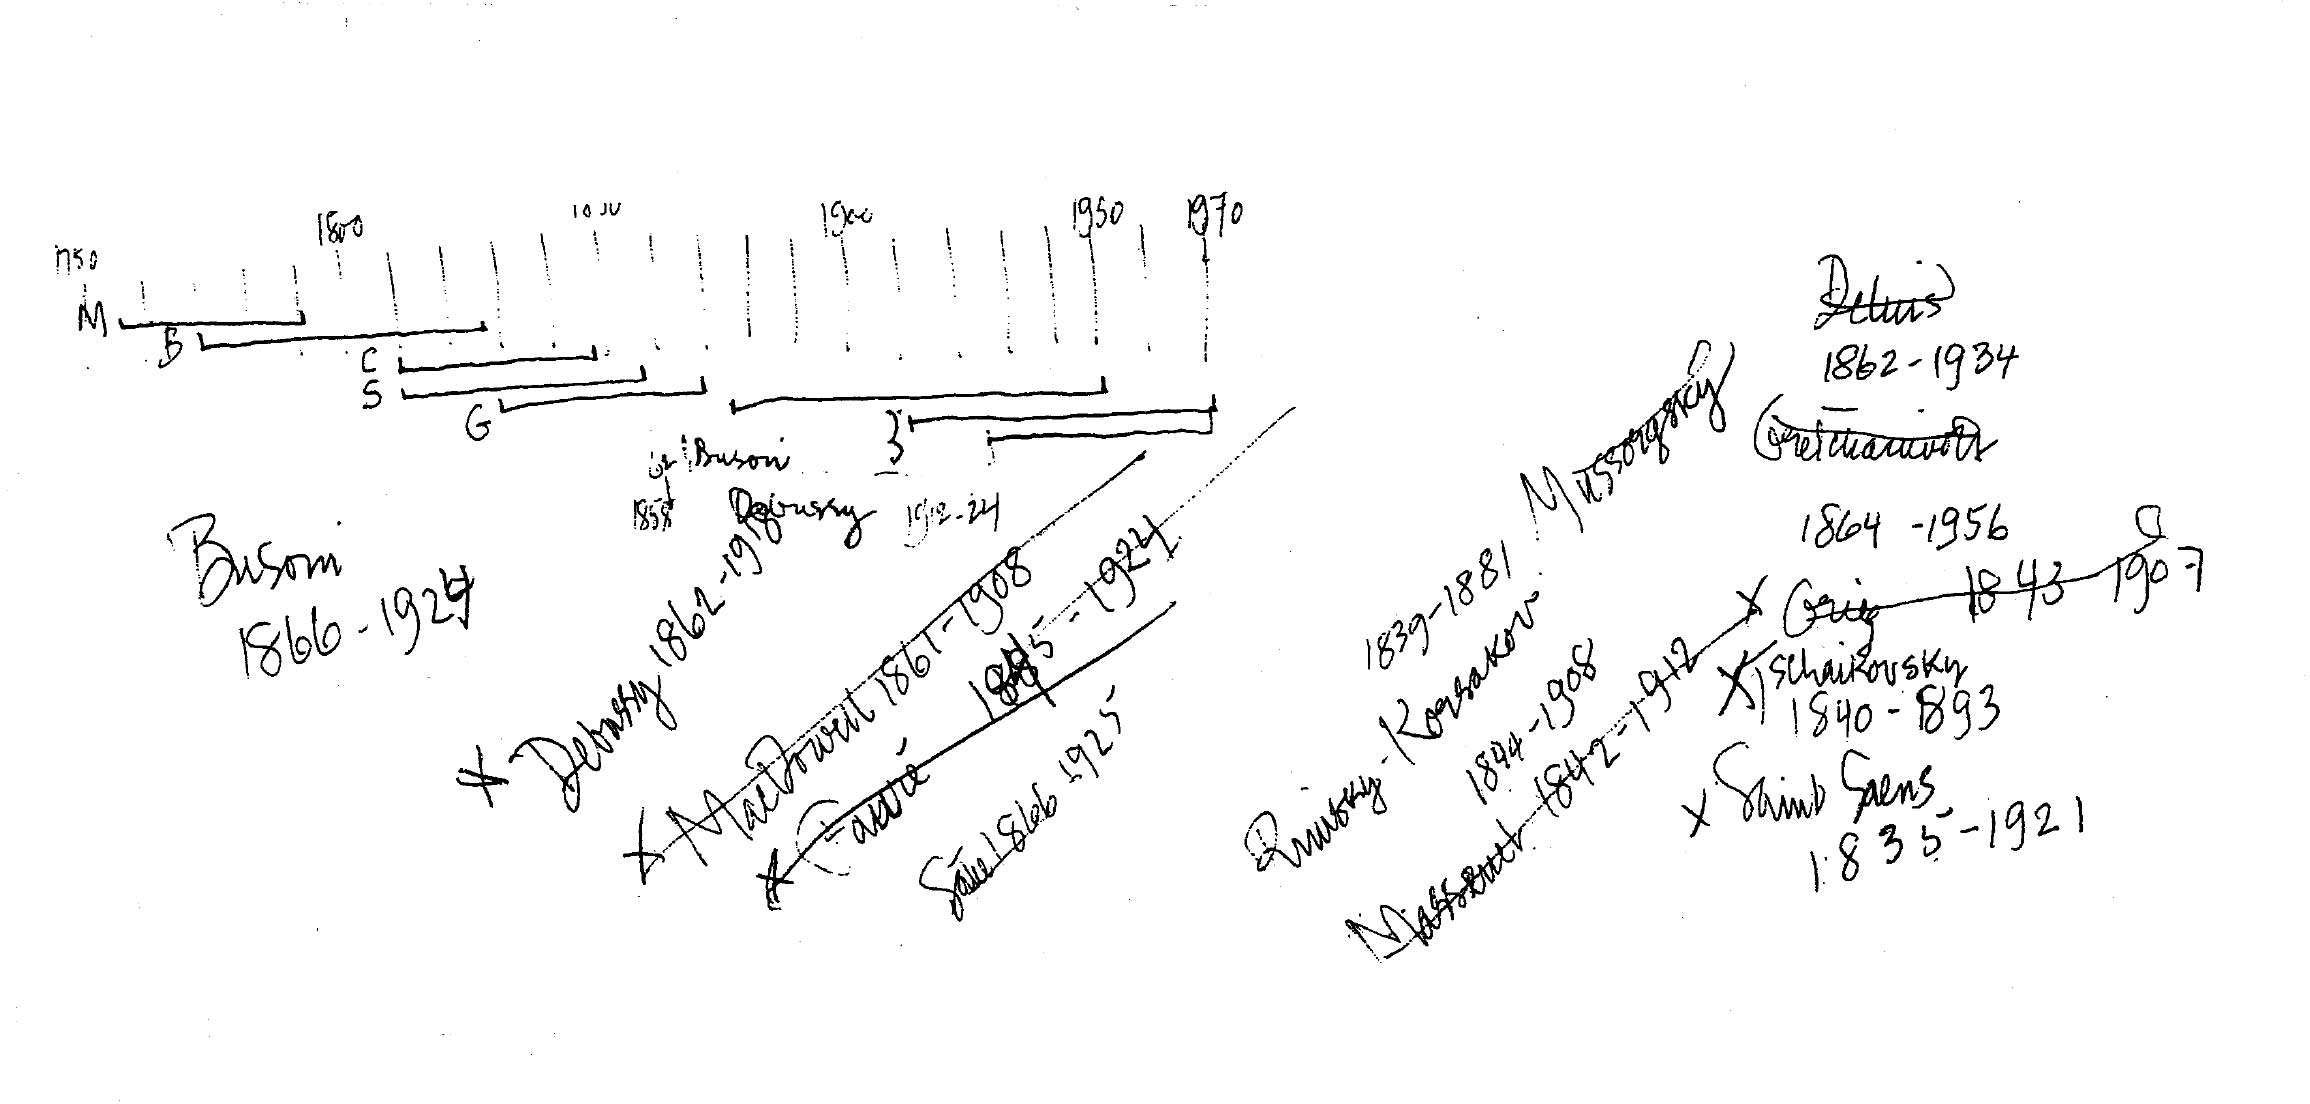 Timeline of composers used in HPSCHD, their birth and death dates, and list of possible replacements for Ives. Manuscript from the John Cage Collection, New York Public Library, New York, New York.